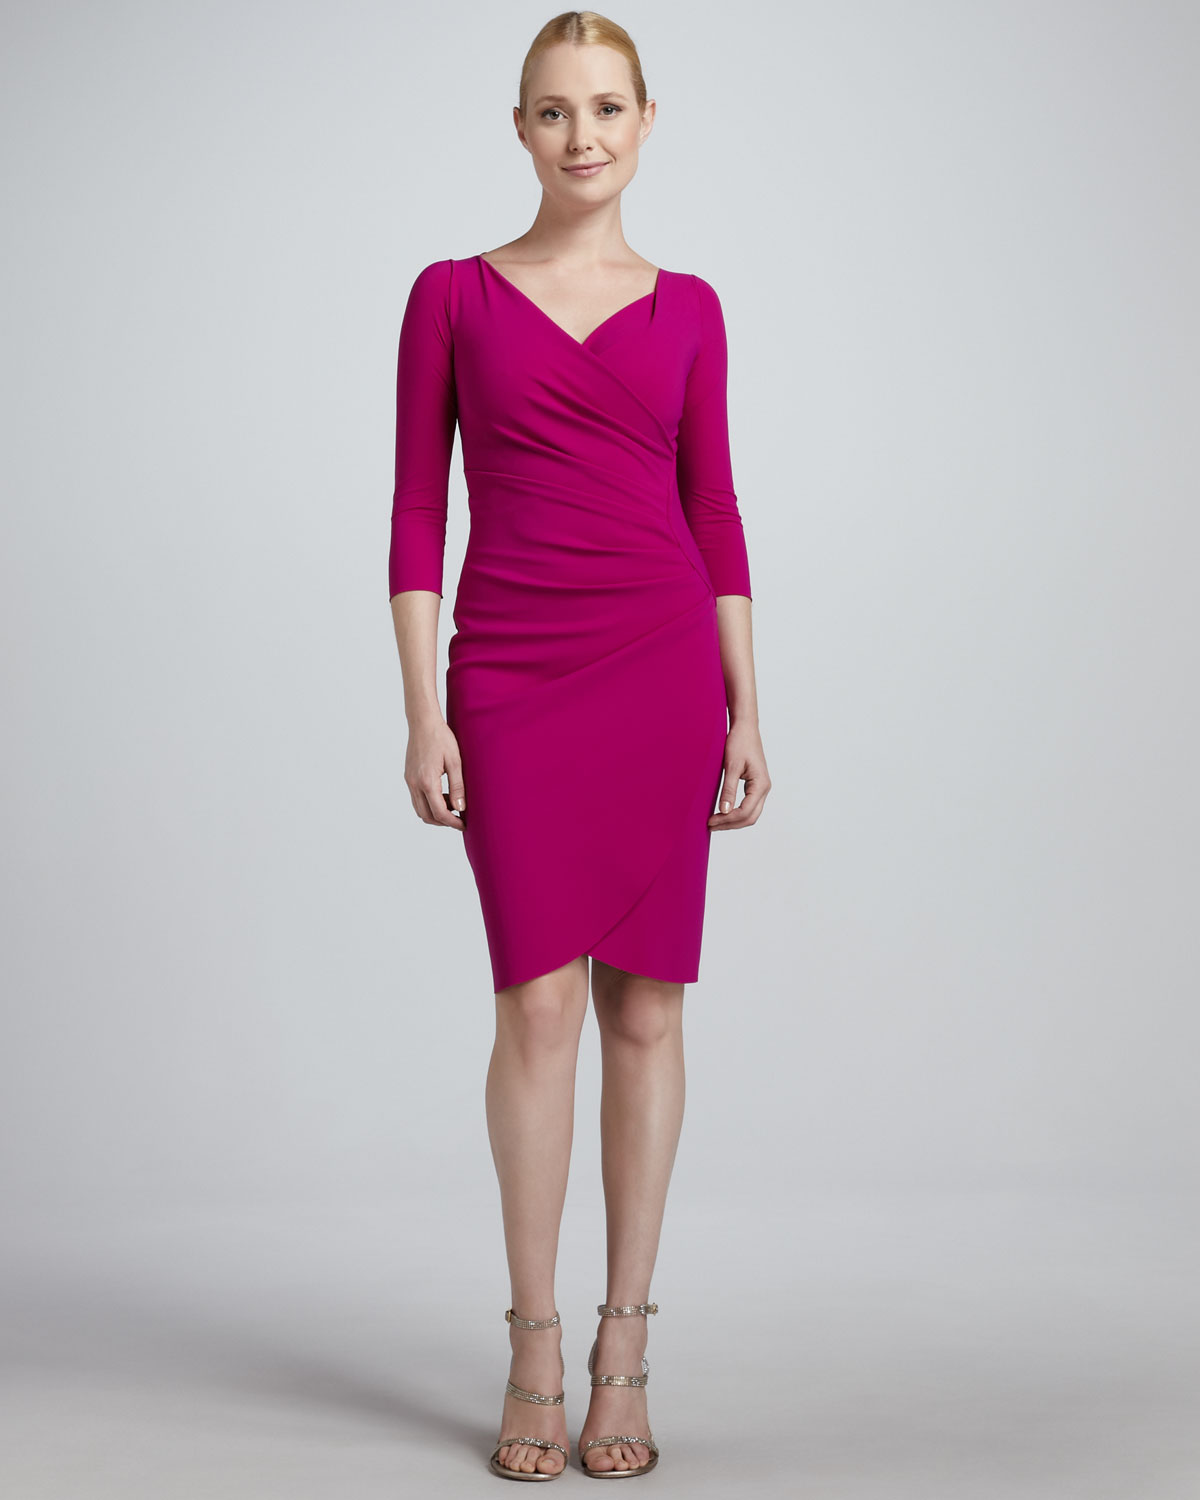 Chiara Boni The Most Popular Dress In America: La Petite Robe Di Chiara Boni Fauxwrap Cocktail Dress In